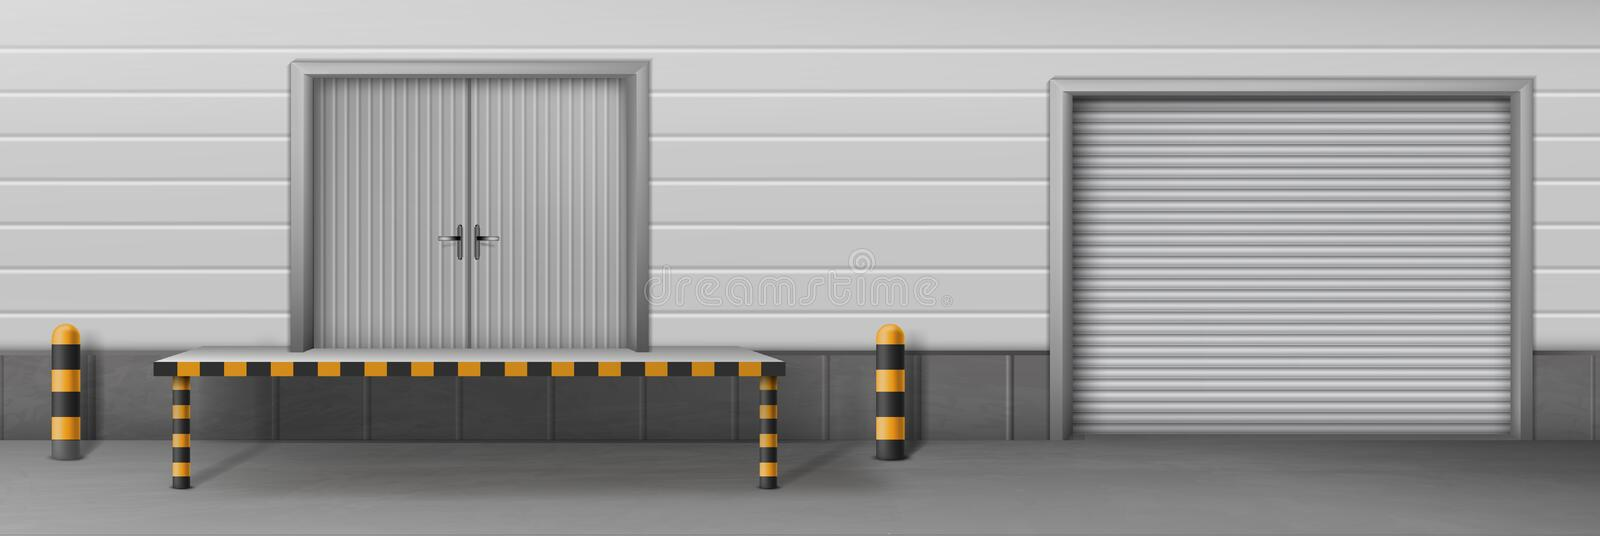 Business warehouse closed gates realistic vector vector illustration